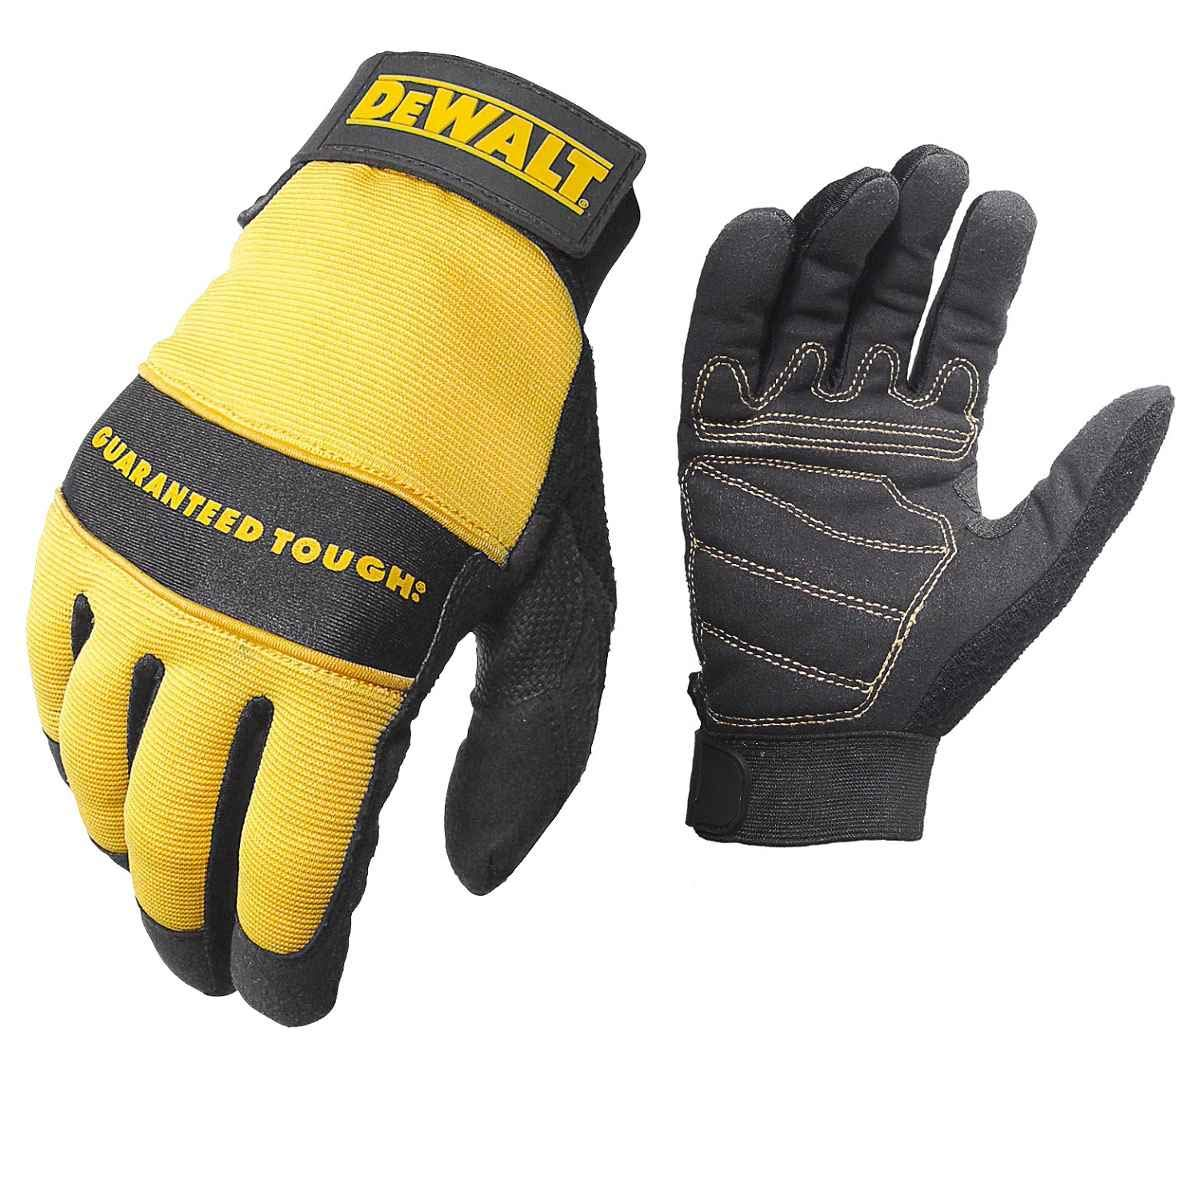 Dewalt DPG20M All Purpose Synthetic Leather Palm Spandex Back Velcro Wrist Work Glove, Medium 1